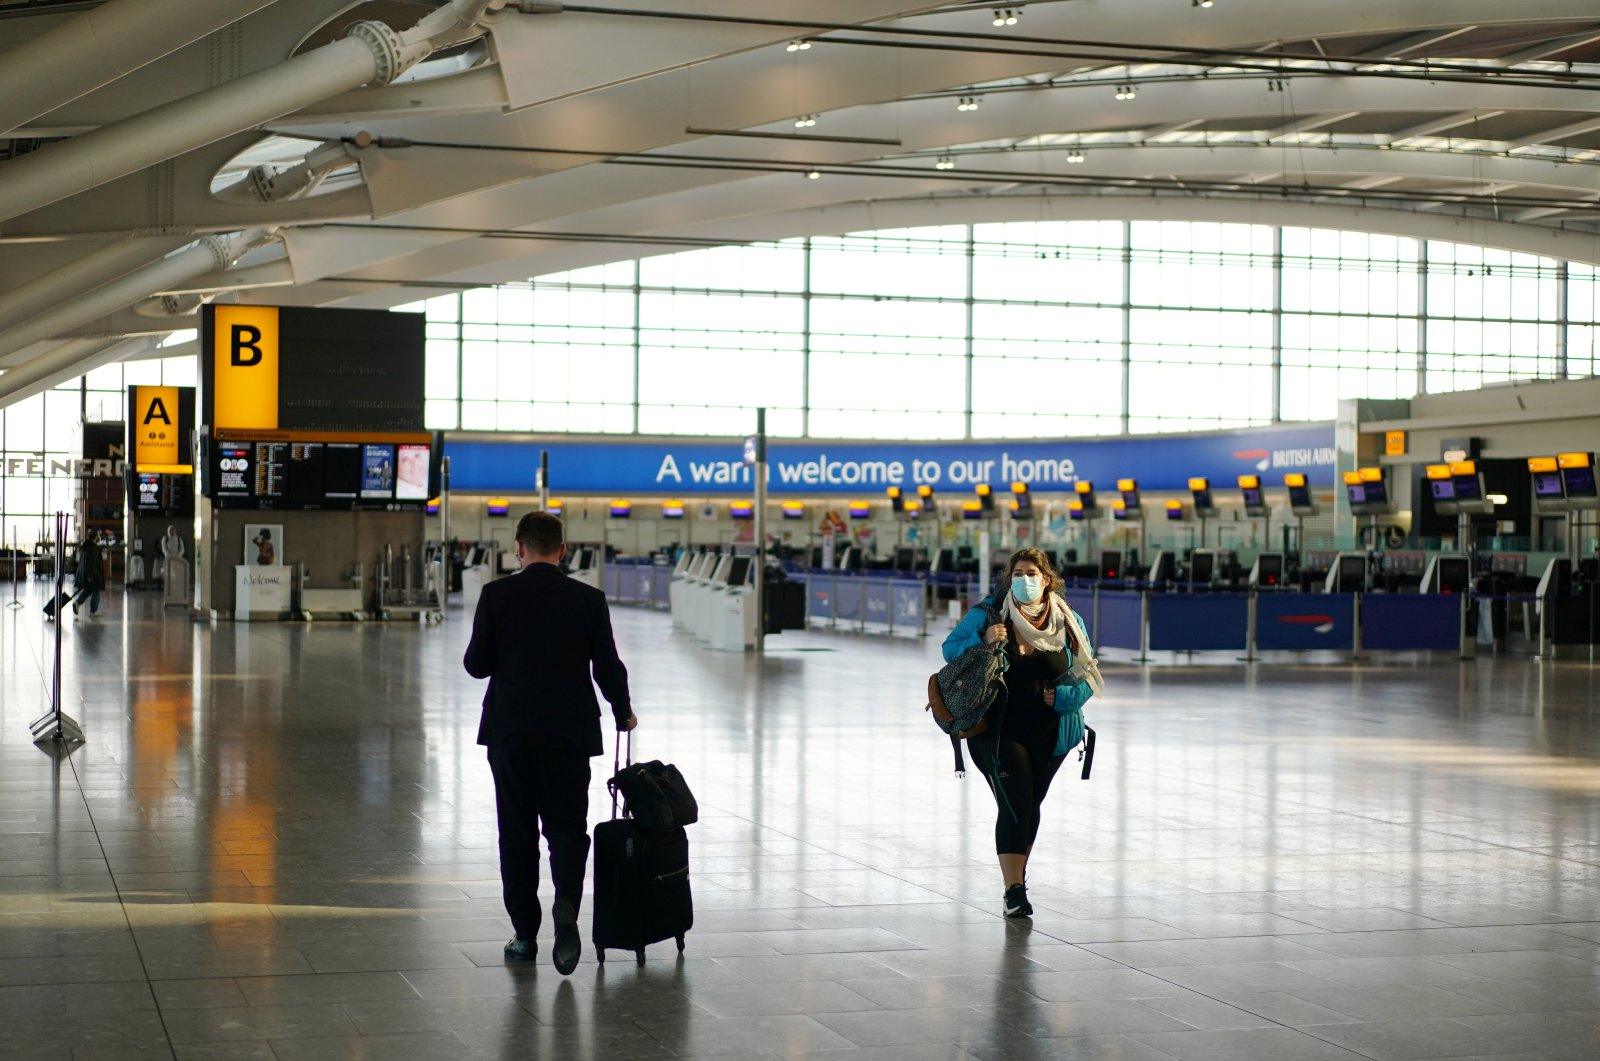 A lady wearing a mask is seen at Heathrow Airport, as the spread of COVID-19 continues, London, U.K., April 5, 2020. (Reuters Photo)